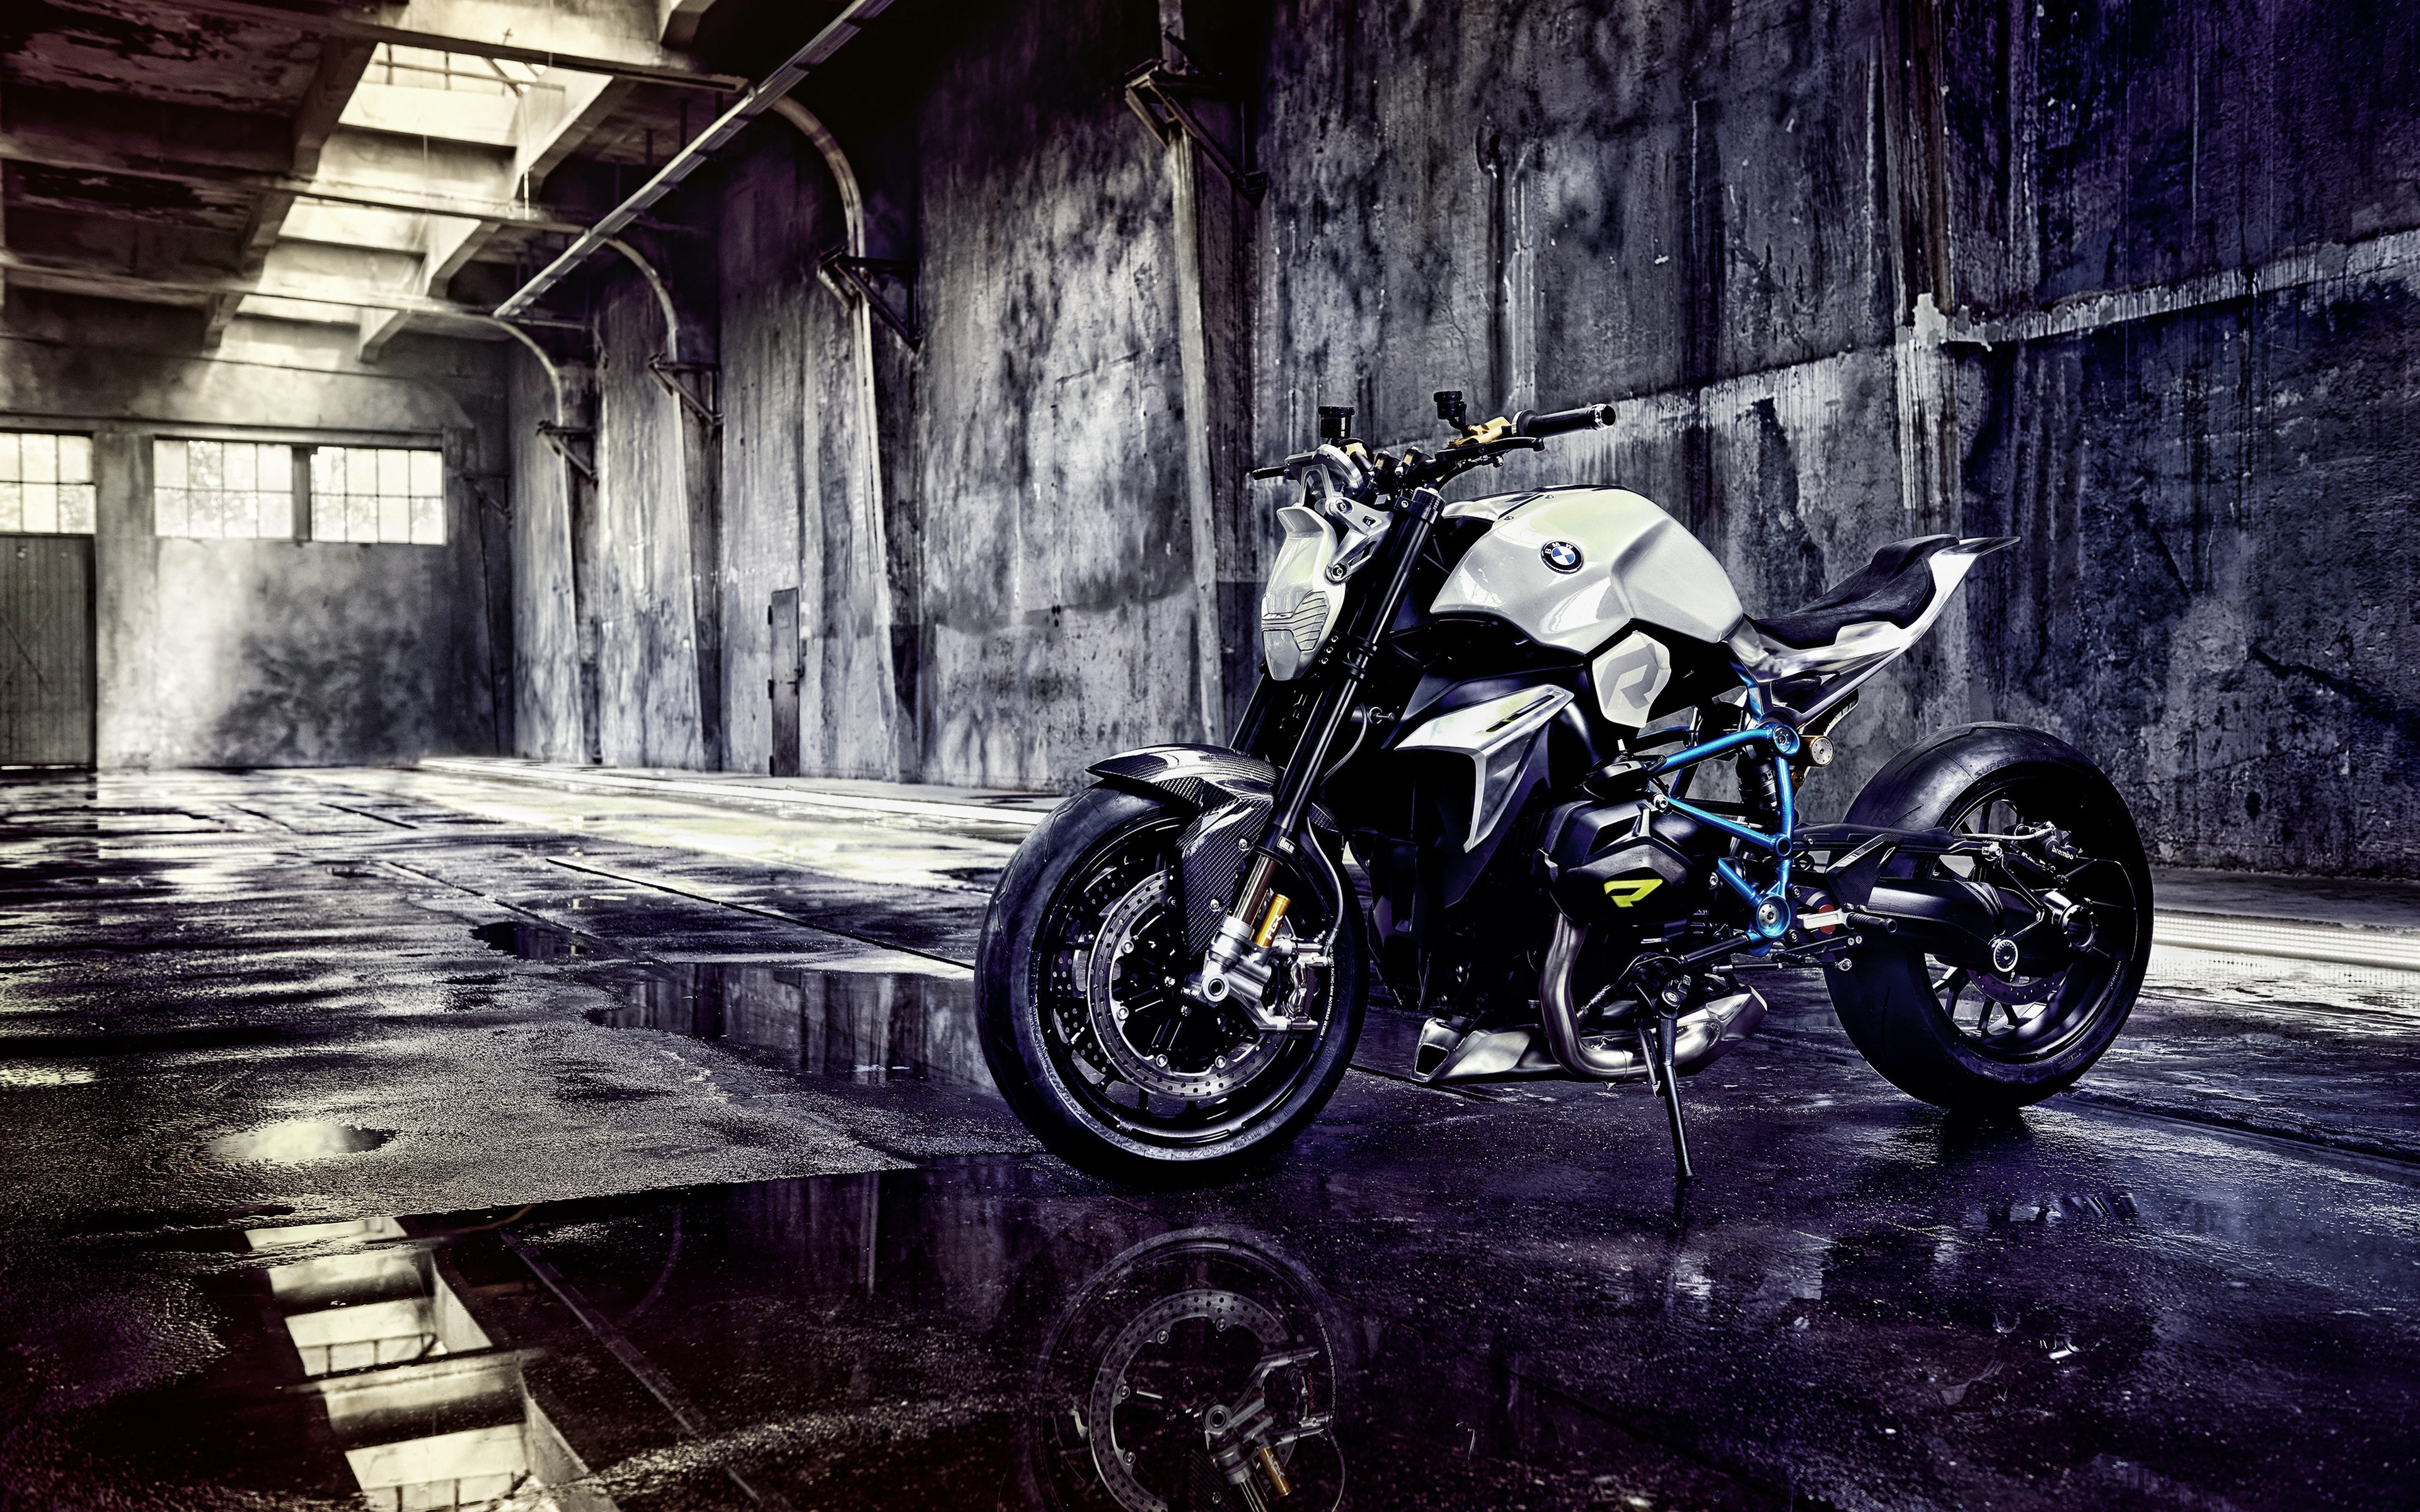 BMW Concept Roadster Motorcycle wallpaper 3840x2400